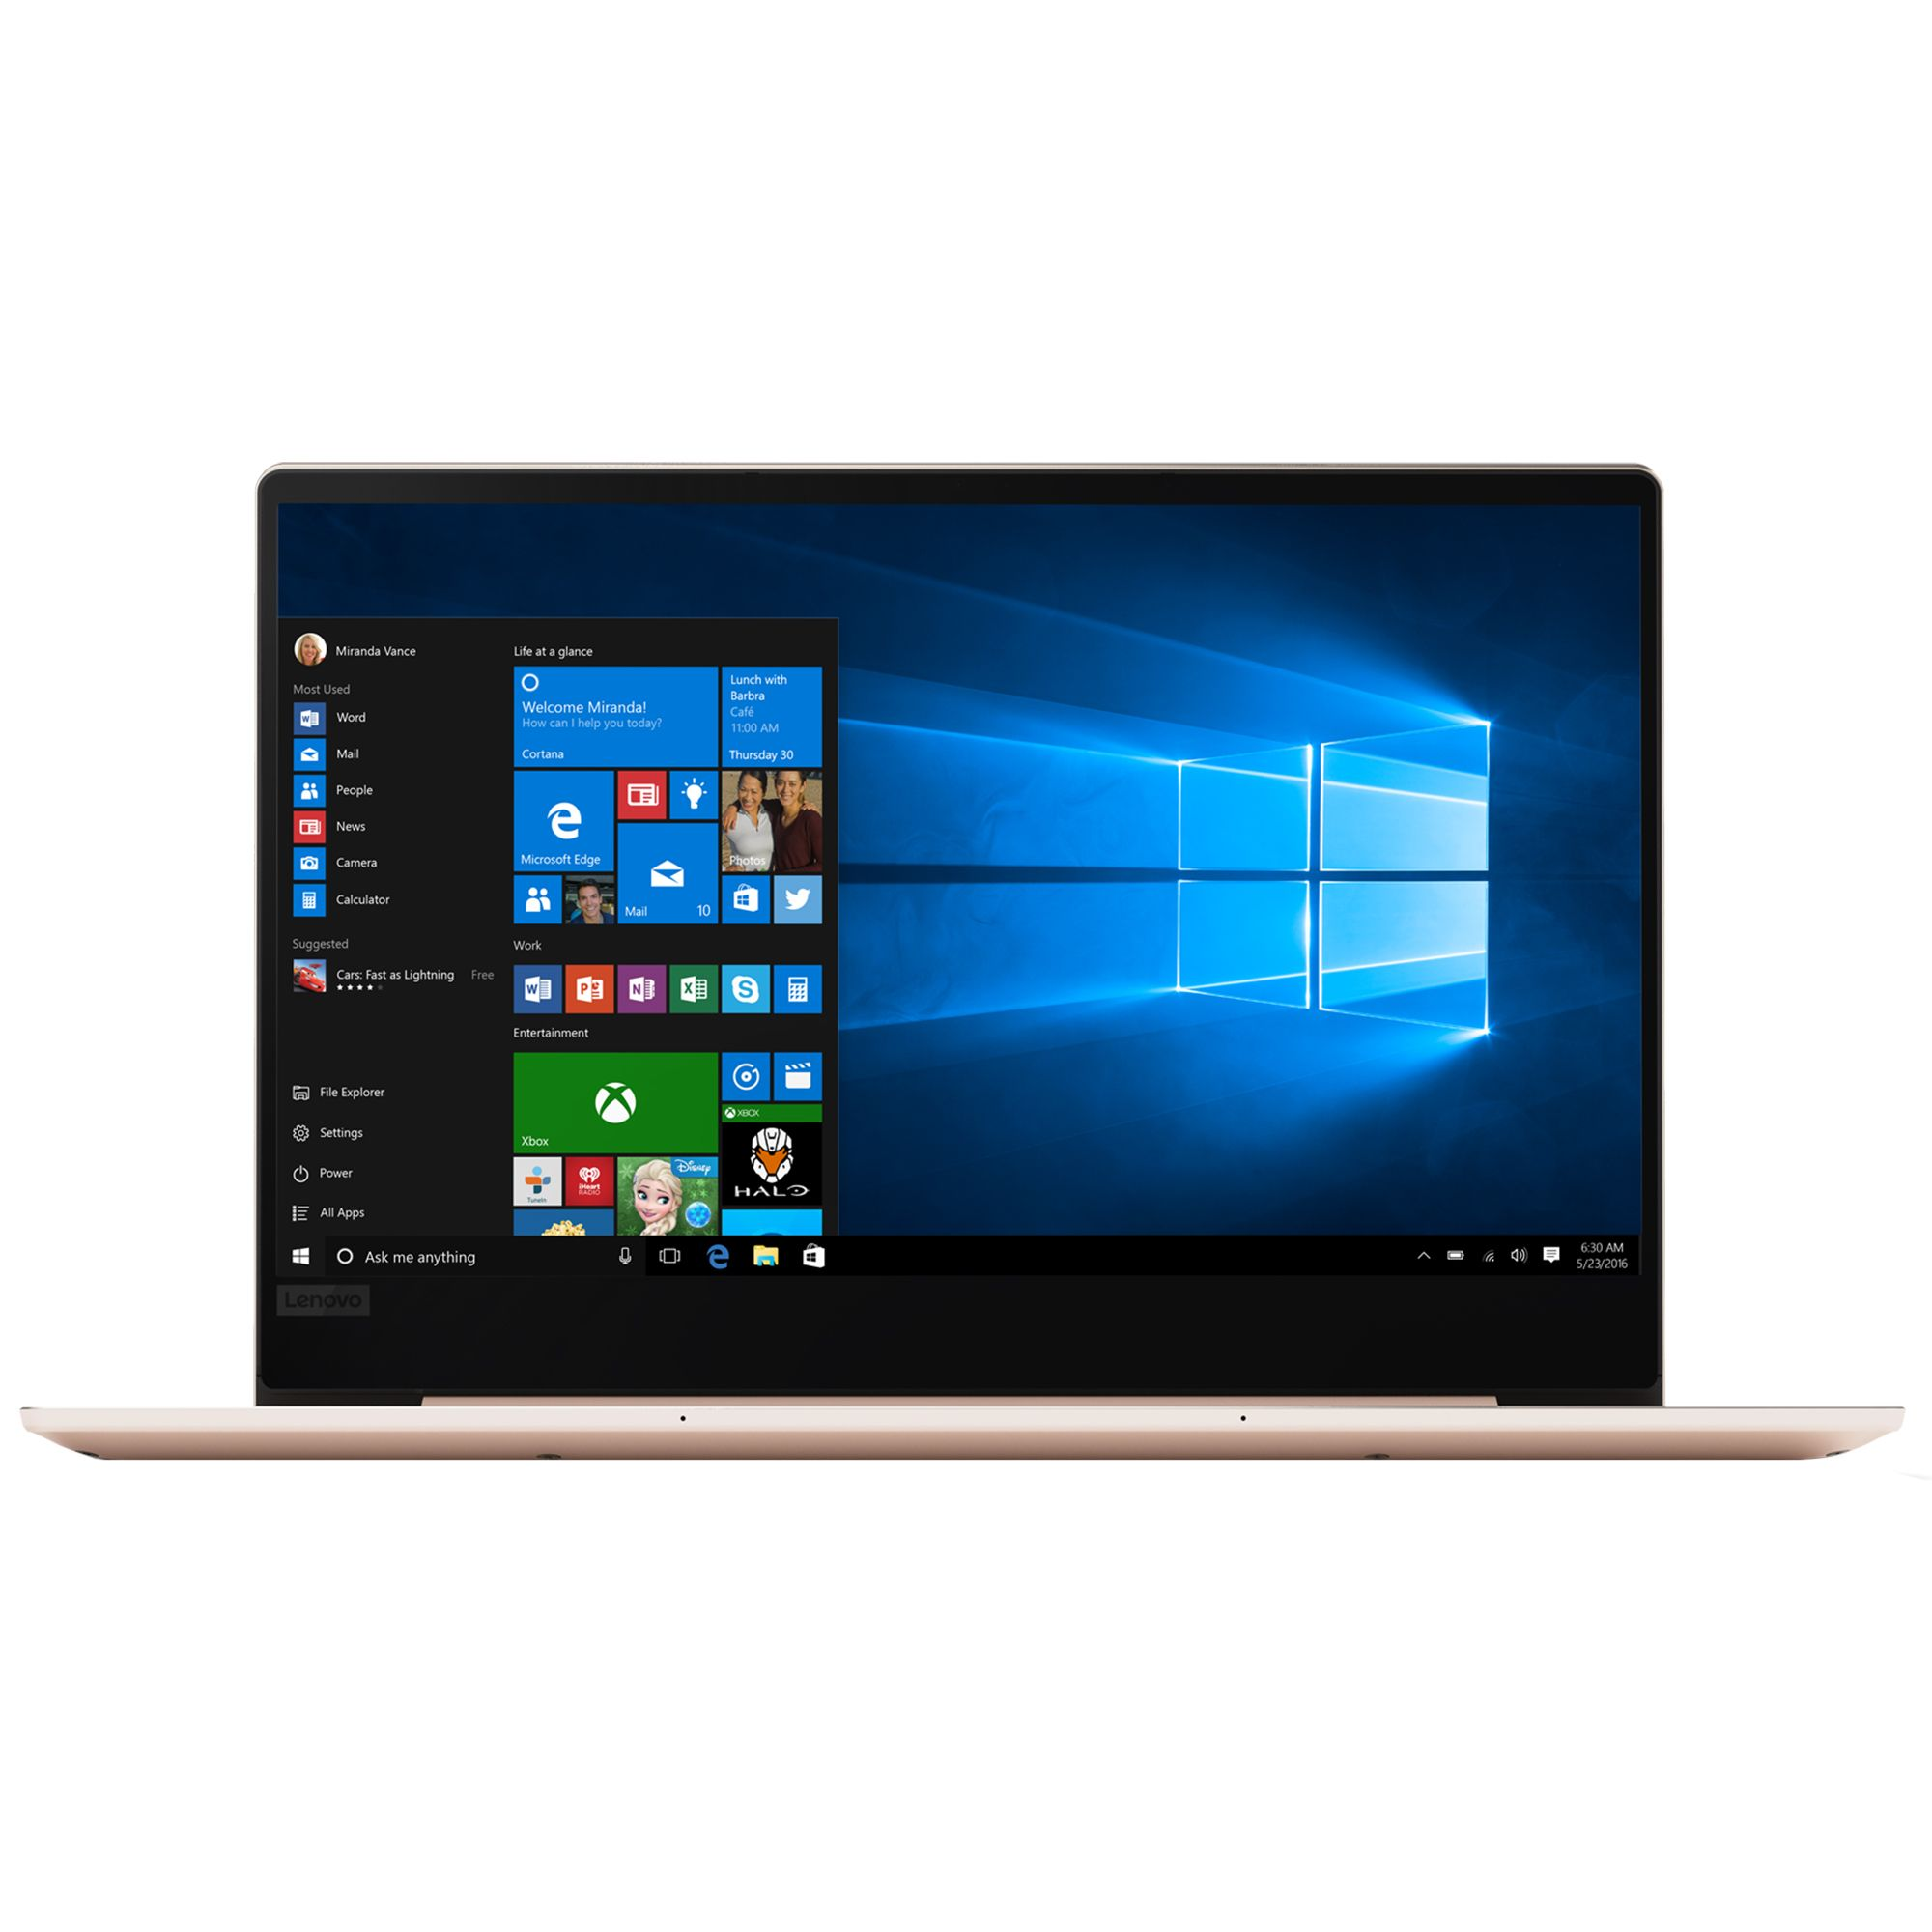 Ultrabook Lenovo IdeaPad 720S 13.3 Full HD Intel Core i7-8550U RAM 8GB SSD 512GB Windows 10 Home Auriu